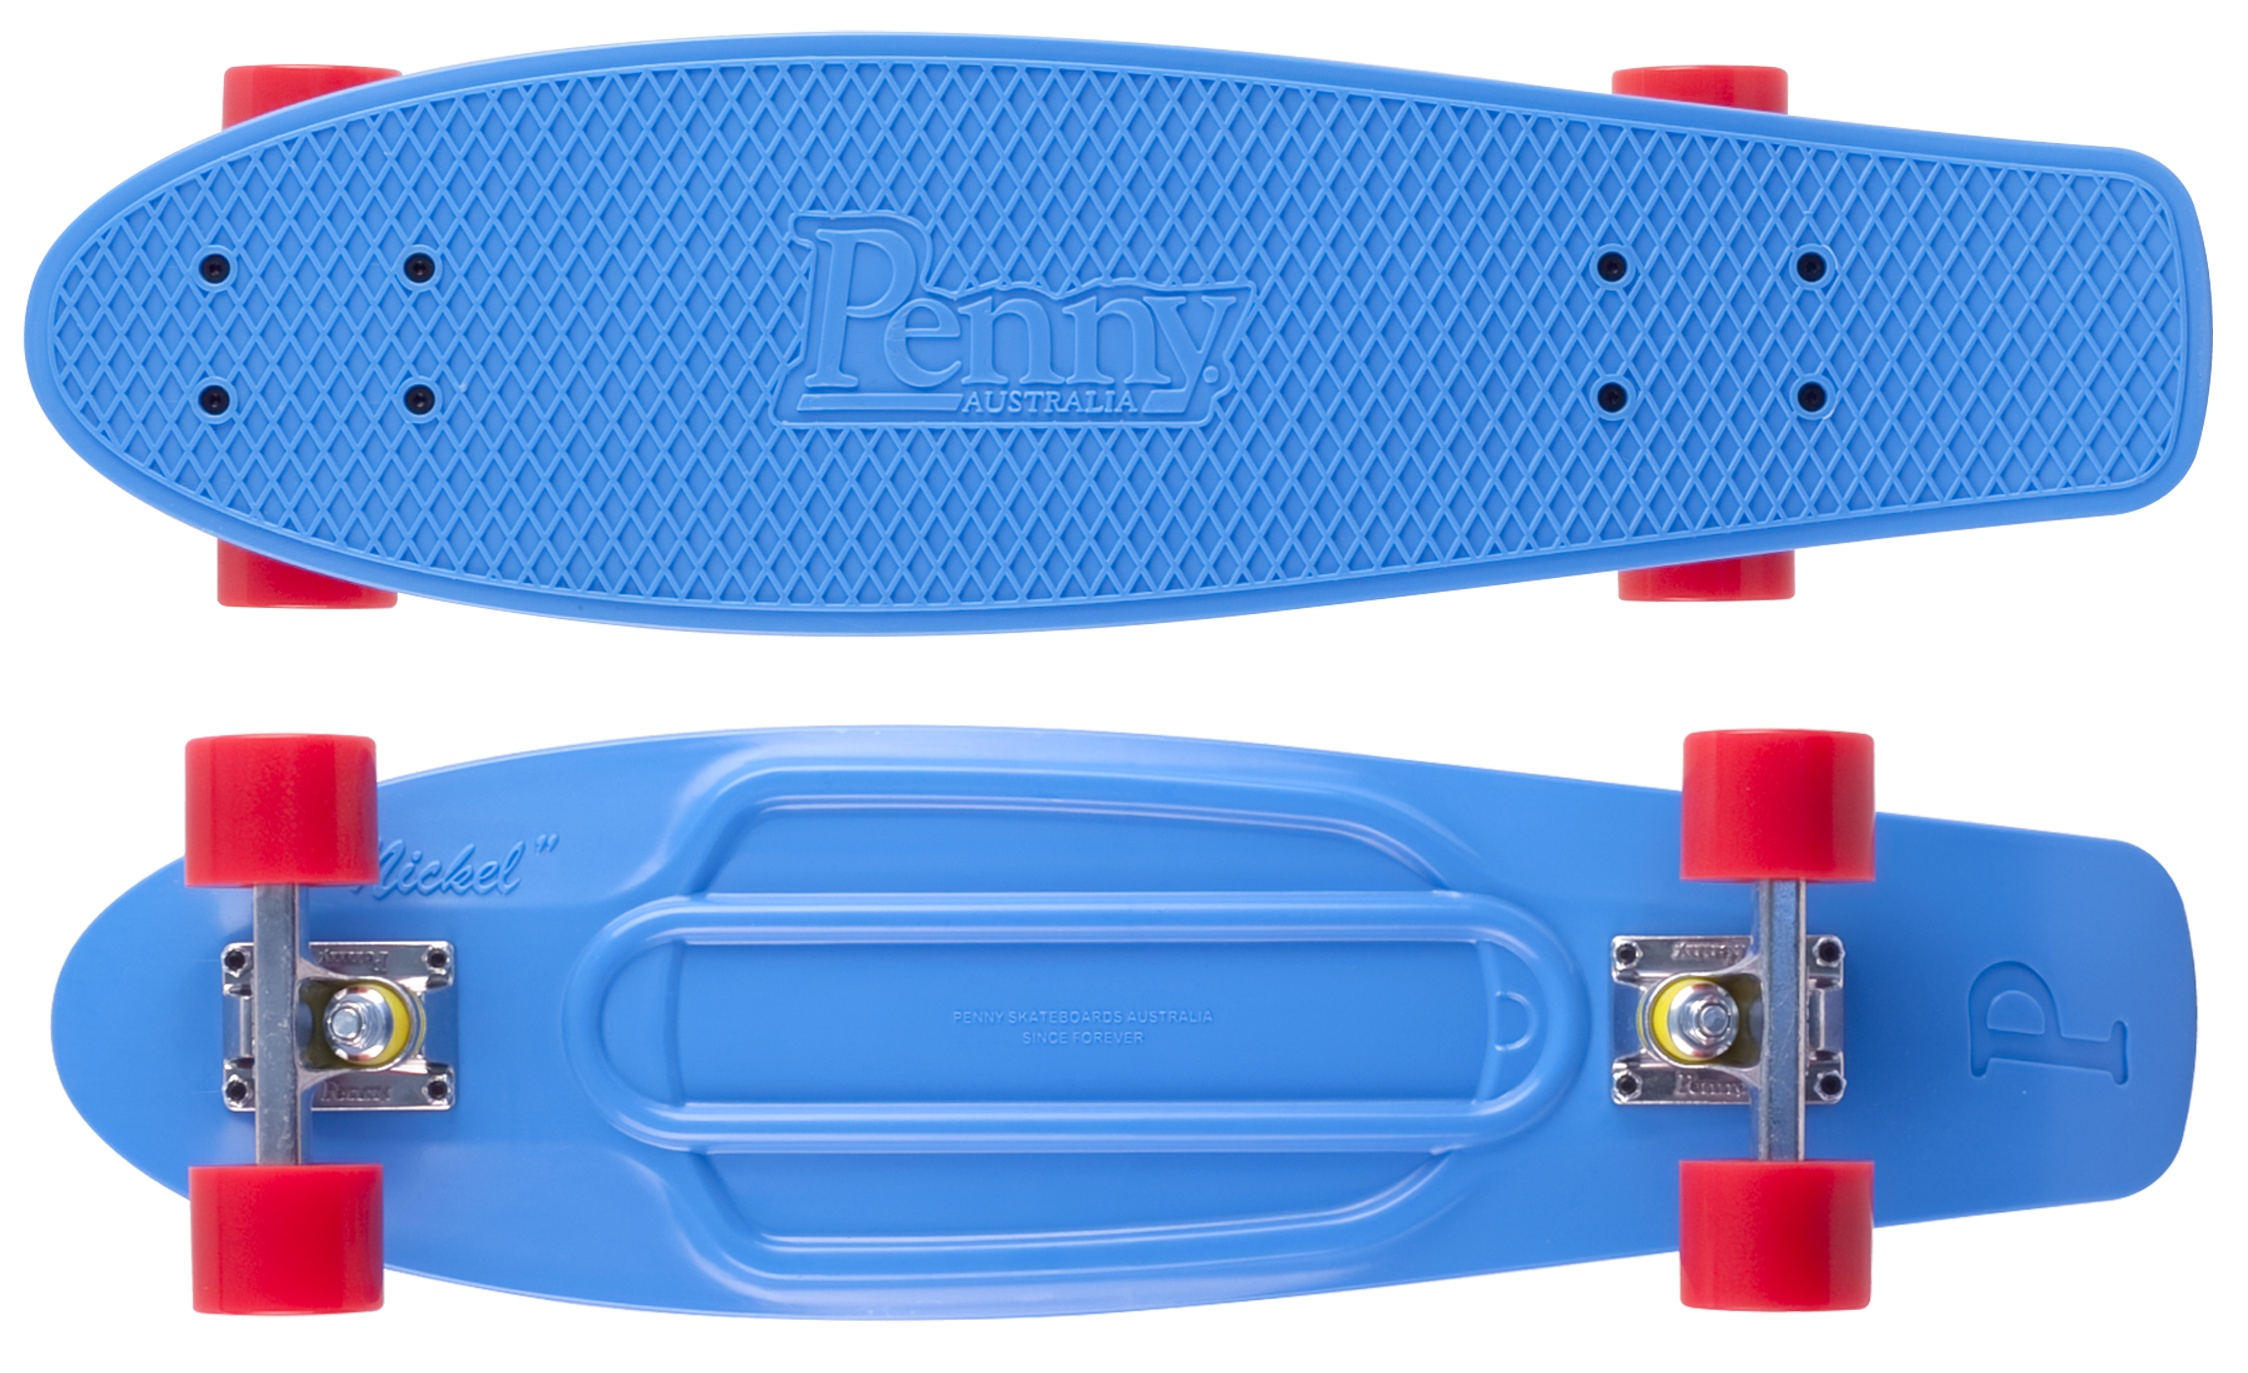 penny skateboards goes big with the nickel